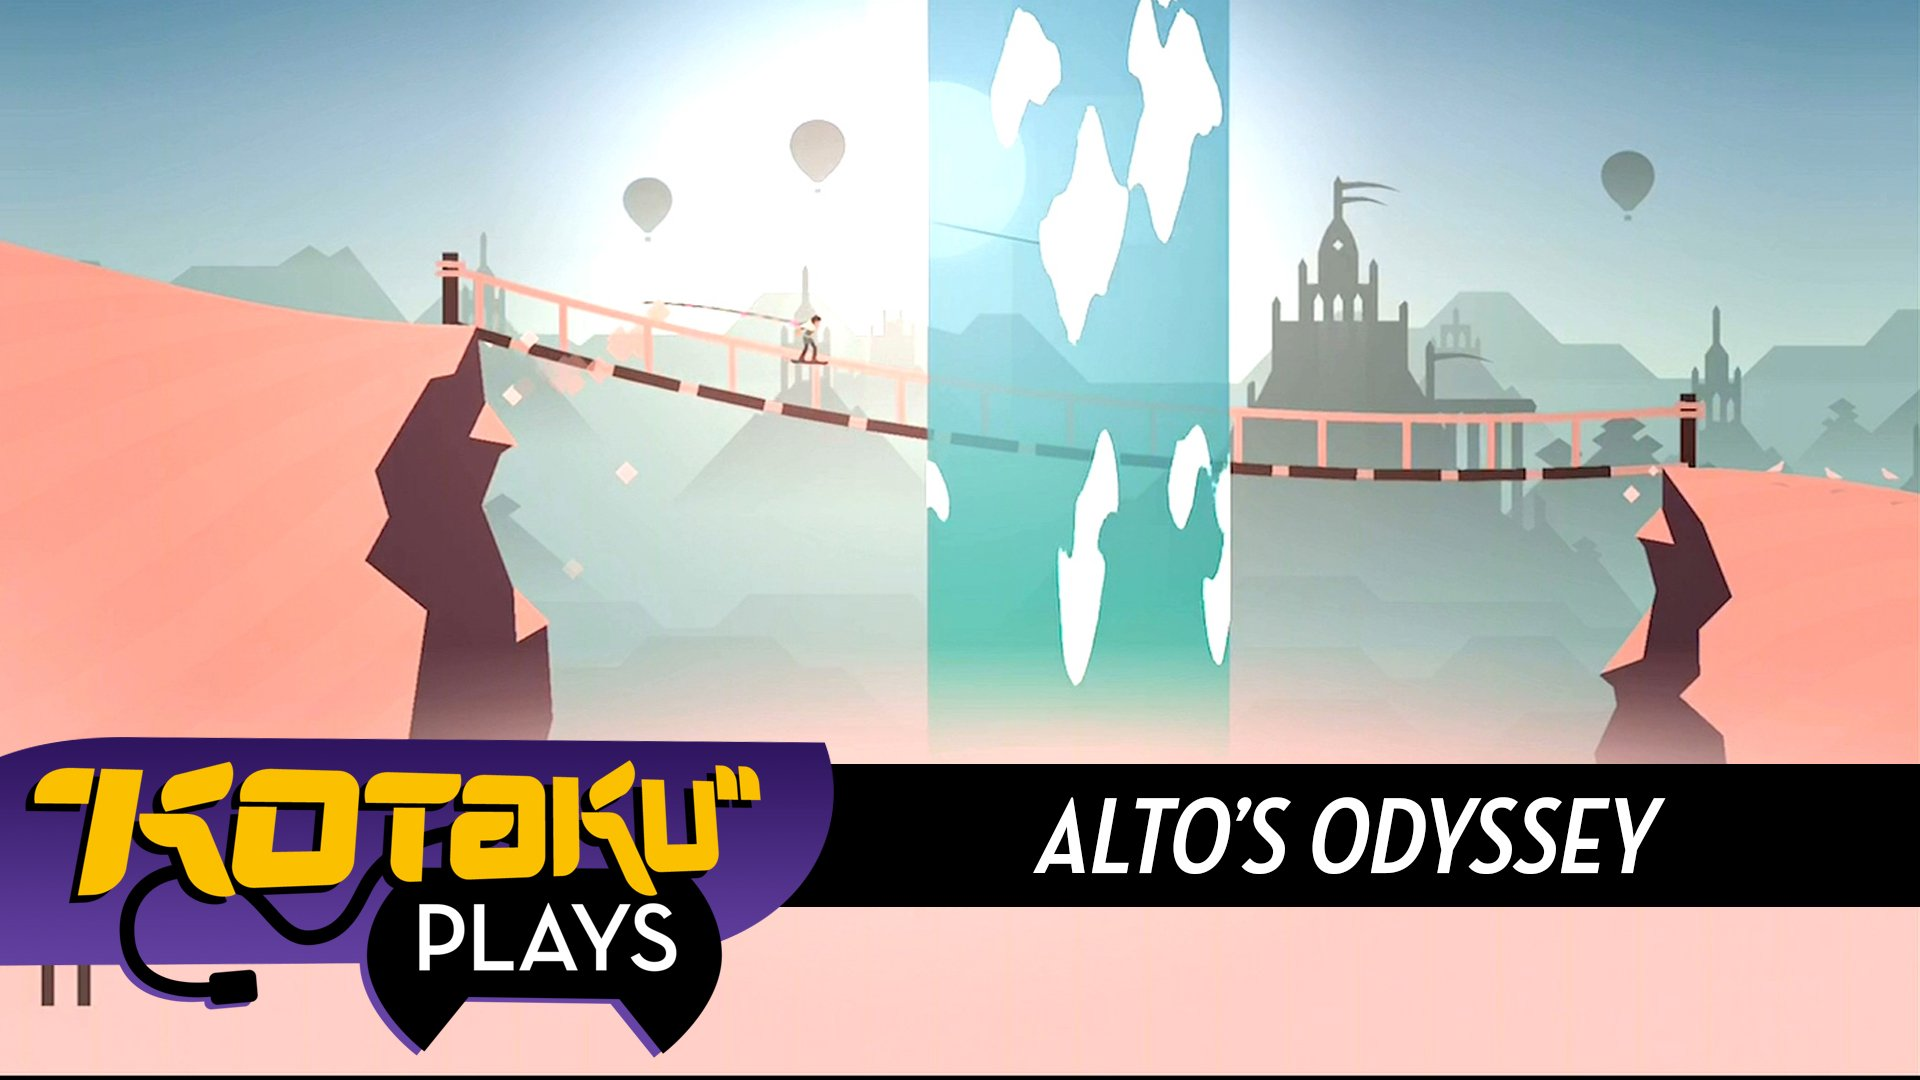 Alto's Odyssey is a sequel that was worth waiting for. https://t.co/T5tId1jrNQ https://t.co/Bvs3a0ZXPW